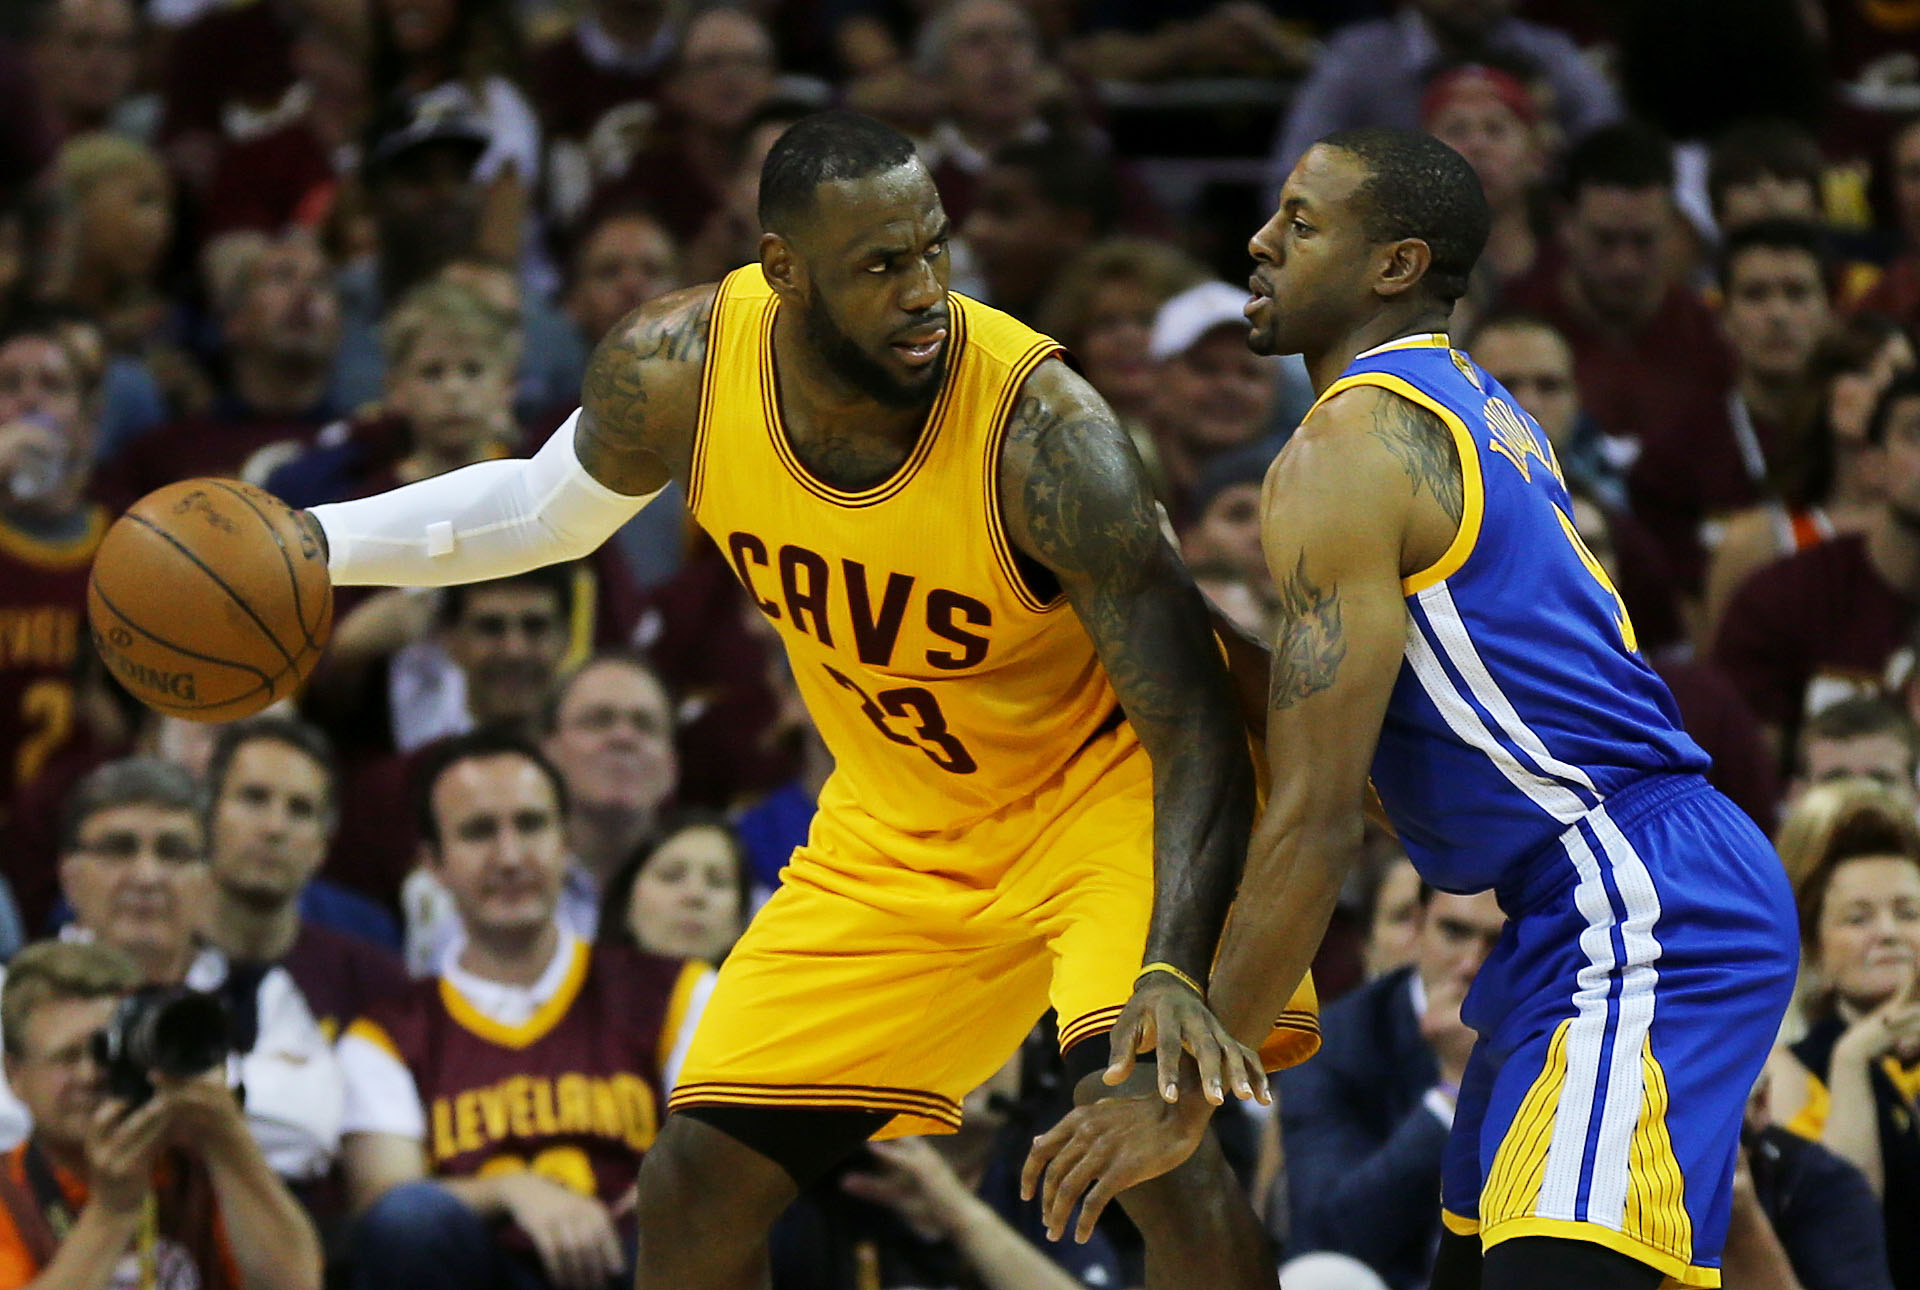 CLEVELAND, OH - JUNE 09:  LeBron James #23 of the Cleveland Cavaliers drives against Andre Iguodala #9 of the Golden State Warriors in the first quarter during Game Three of the 2015 NBA Finals at Quicken Loans Arena on June 9, 2015 in Cleveland, Ohio.  (